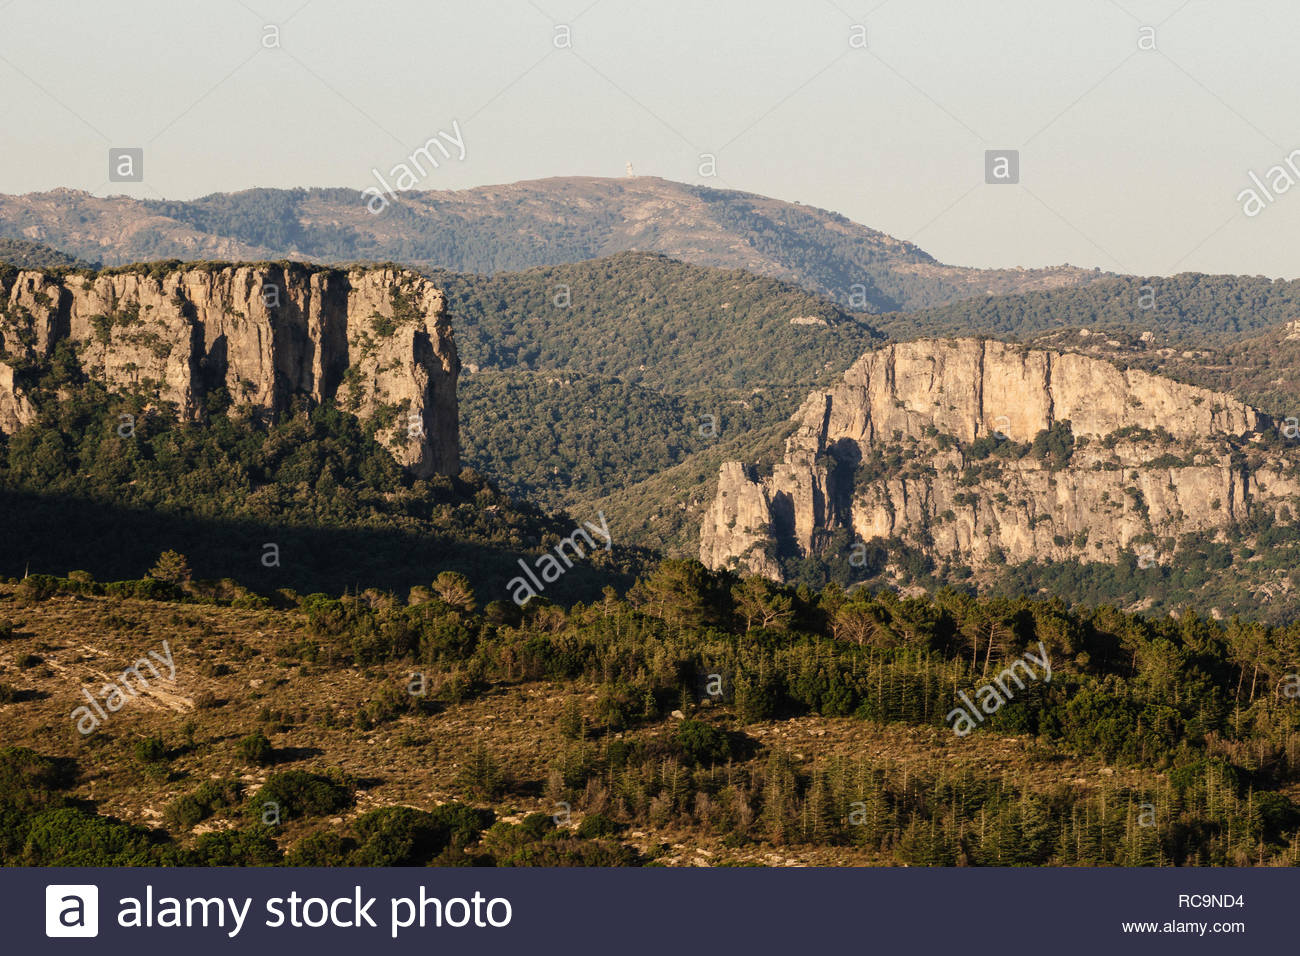 Seuil, a little village aside of the wild Sardinian mountain where typical farmer and shepherd are living a non-urban life, with an 'old' life-style. - Stock Image